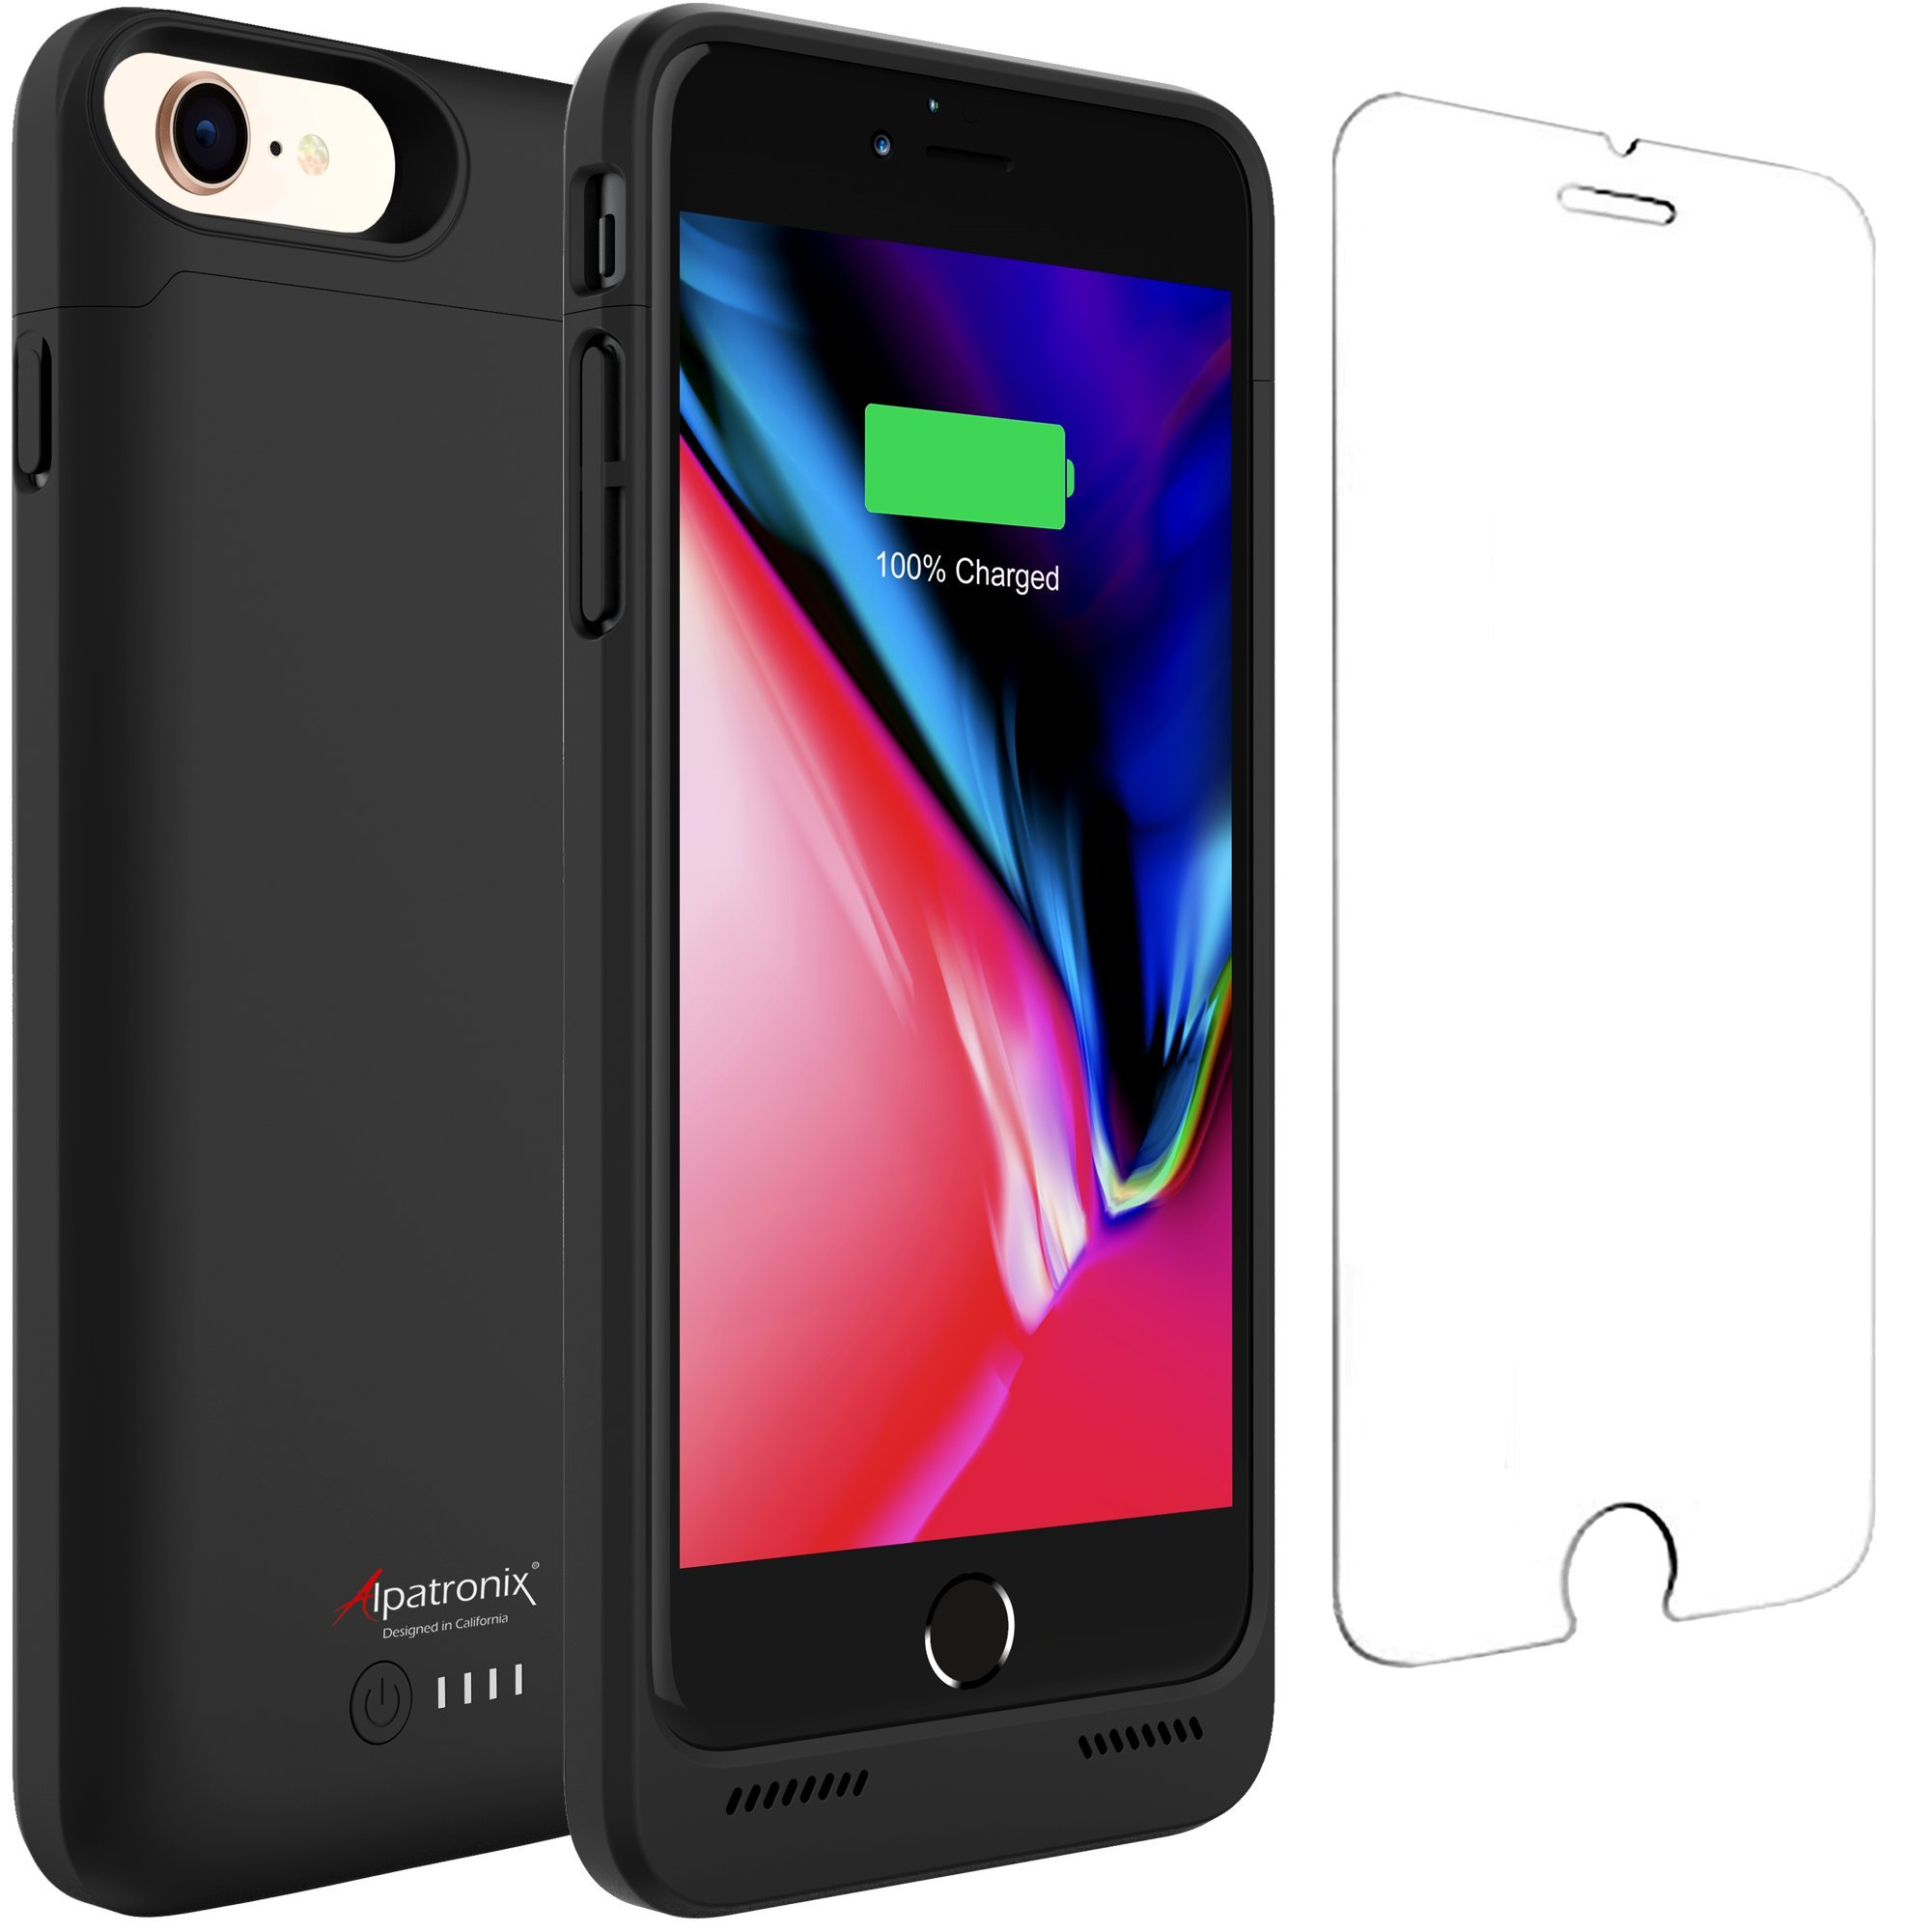 iPhone 8/7 Battery Case Qi Wireless Charging Compatible, Alpatronix BX190 4.7-inch 3200mAh Slim Rechargeable Extended Protective Portable Charger for iPhone 8 & iPhone 7 [Apple Certified Chip] - Black